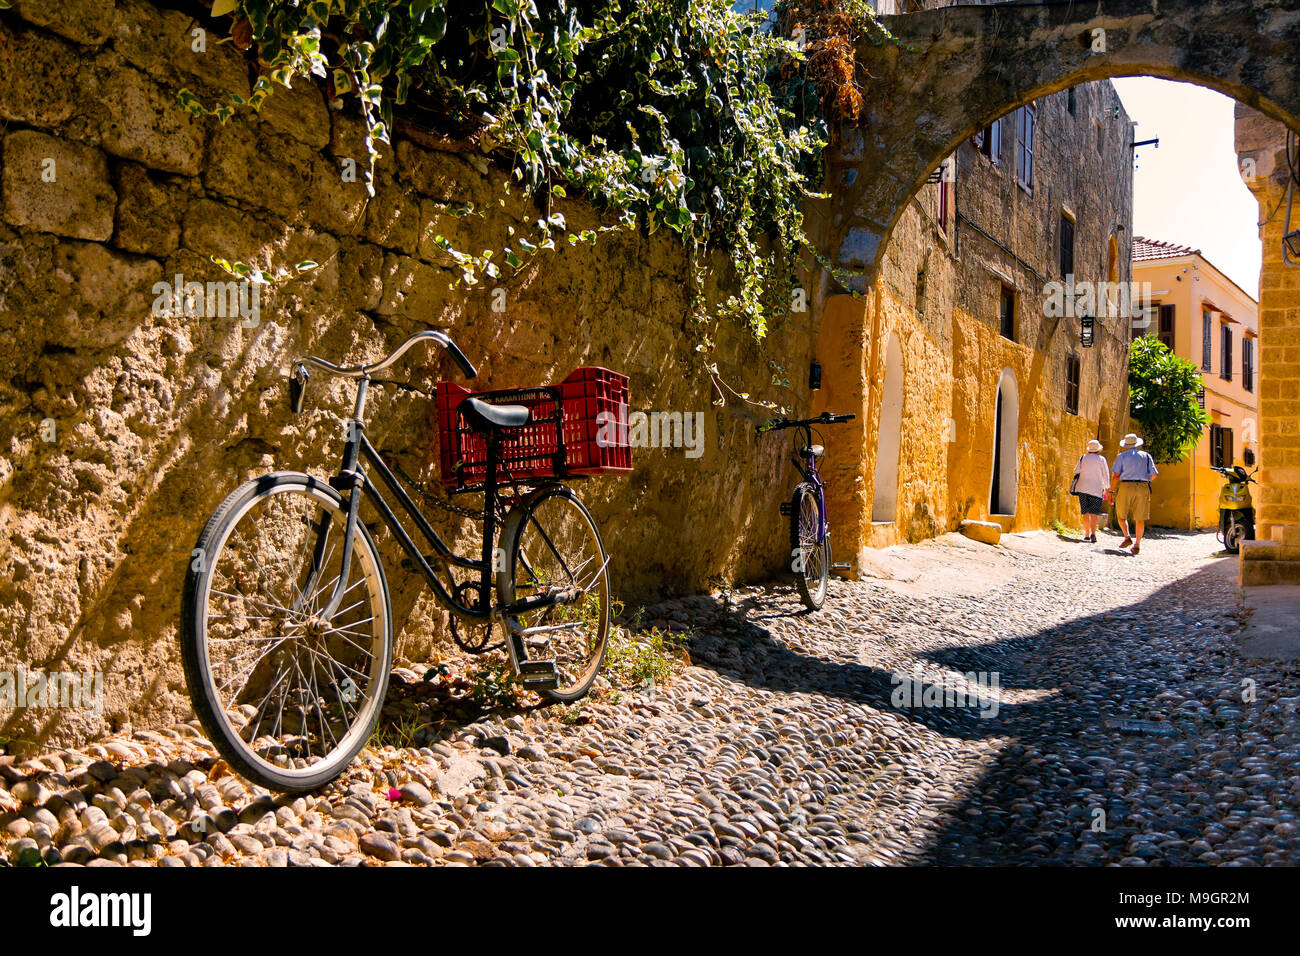 RHODES, GREECE - SEPTEMBER 30: Tourists admire charming secret narrow streets of Rhodes Island, bicycles in the foreground. September 30 2011, Greece - Stock Image